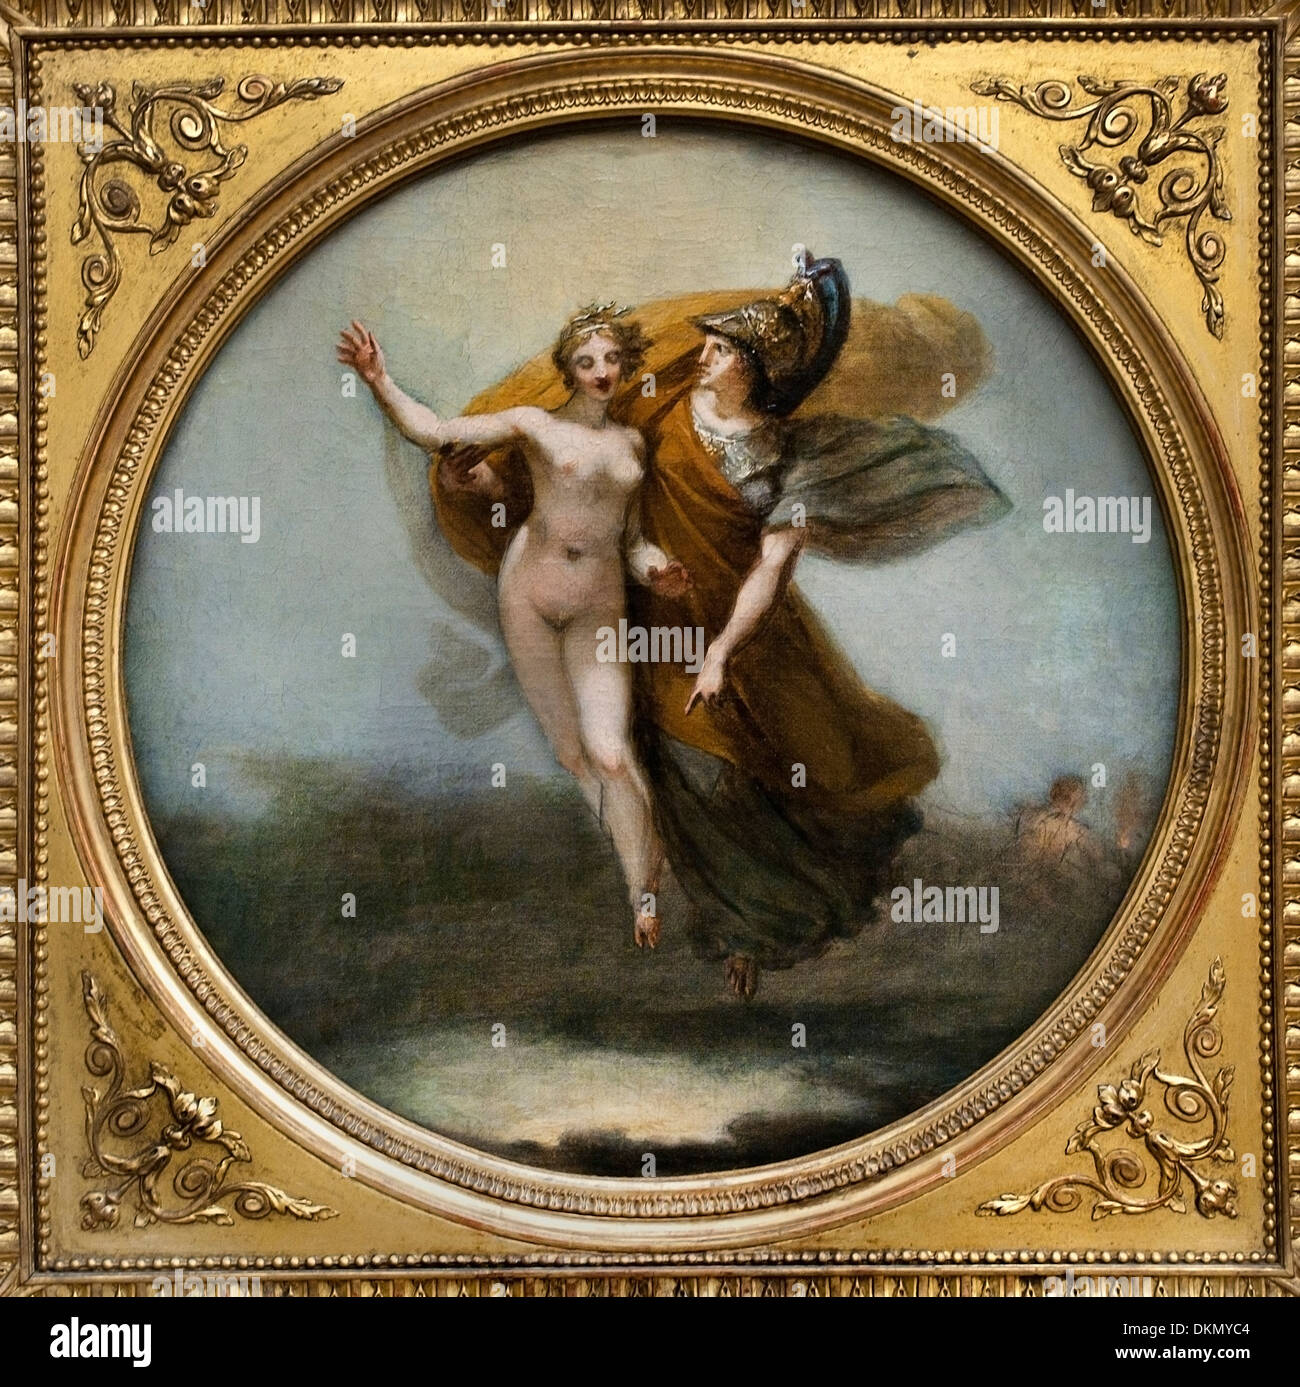 Wisdom and Truth Descending to Earth 1799 by Pierre Paul Prud'don 1758-1821 France French Stock Photo